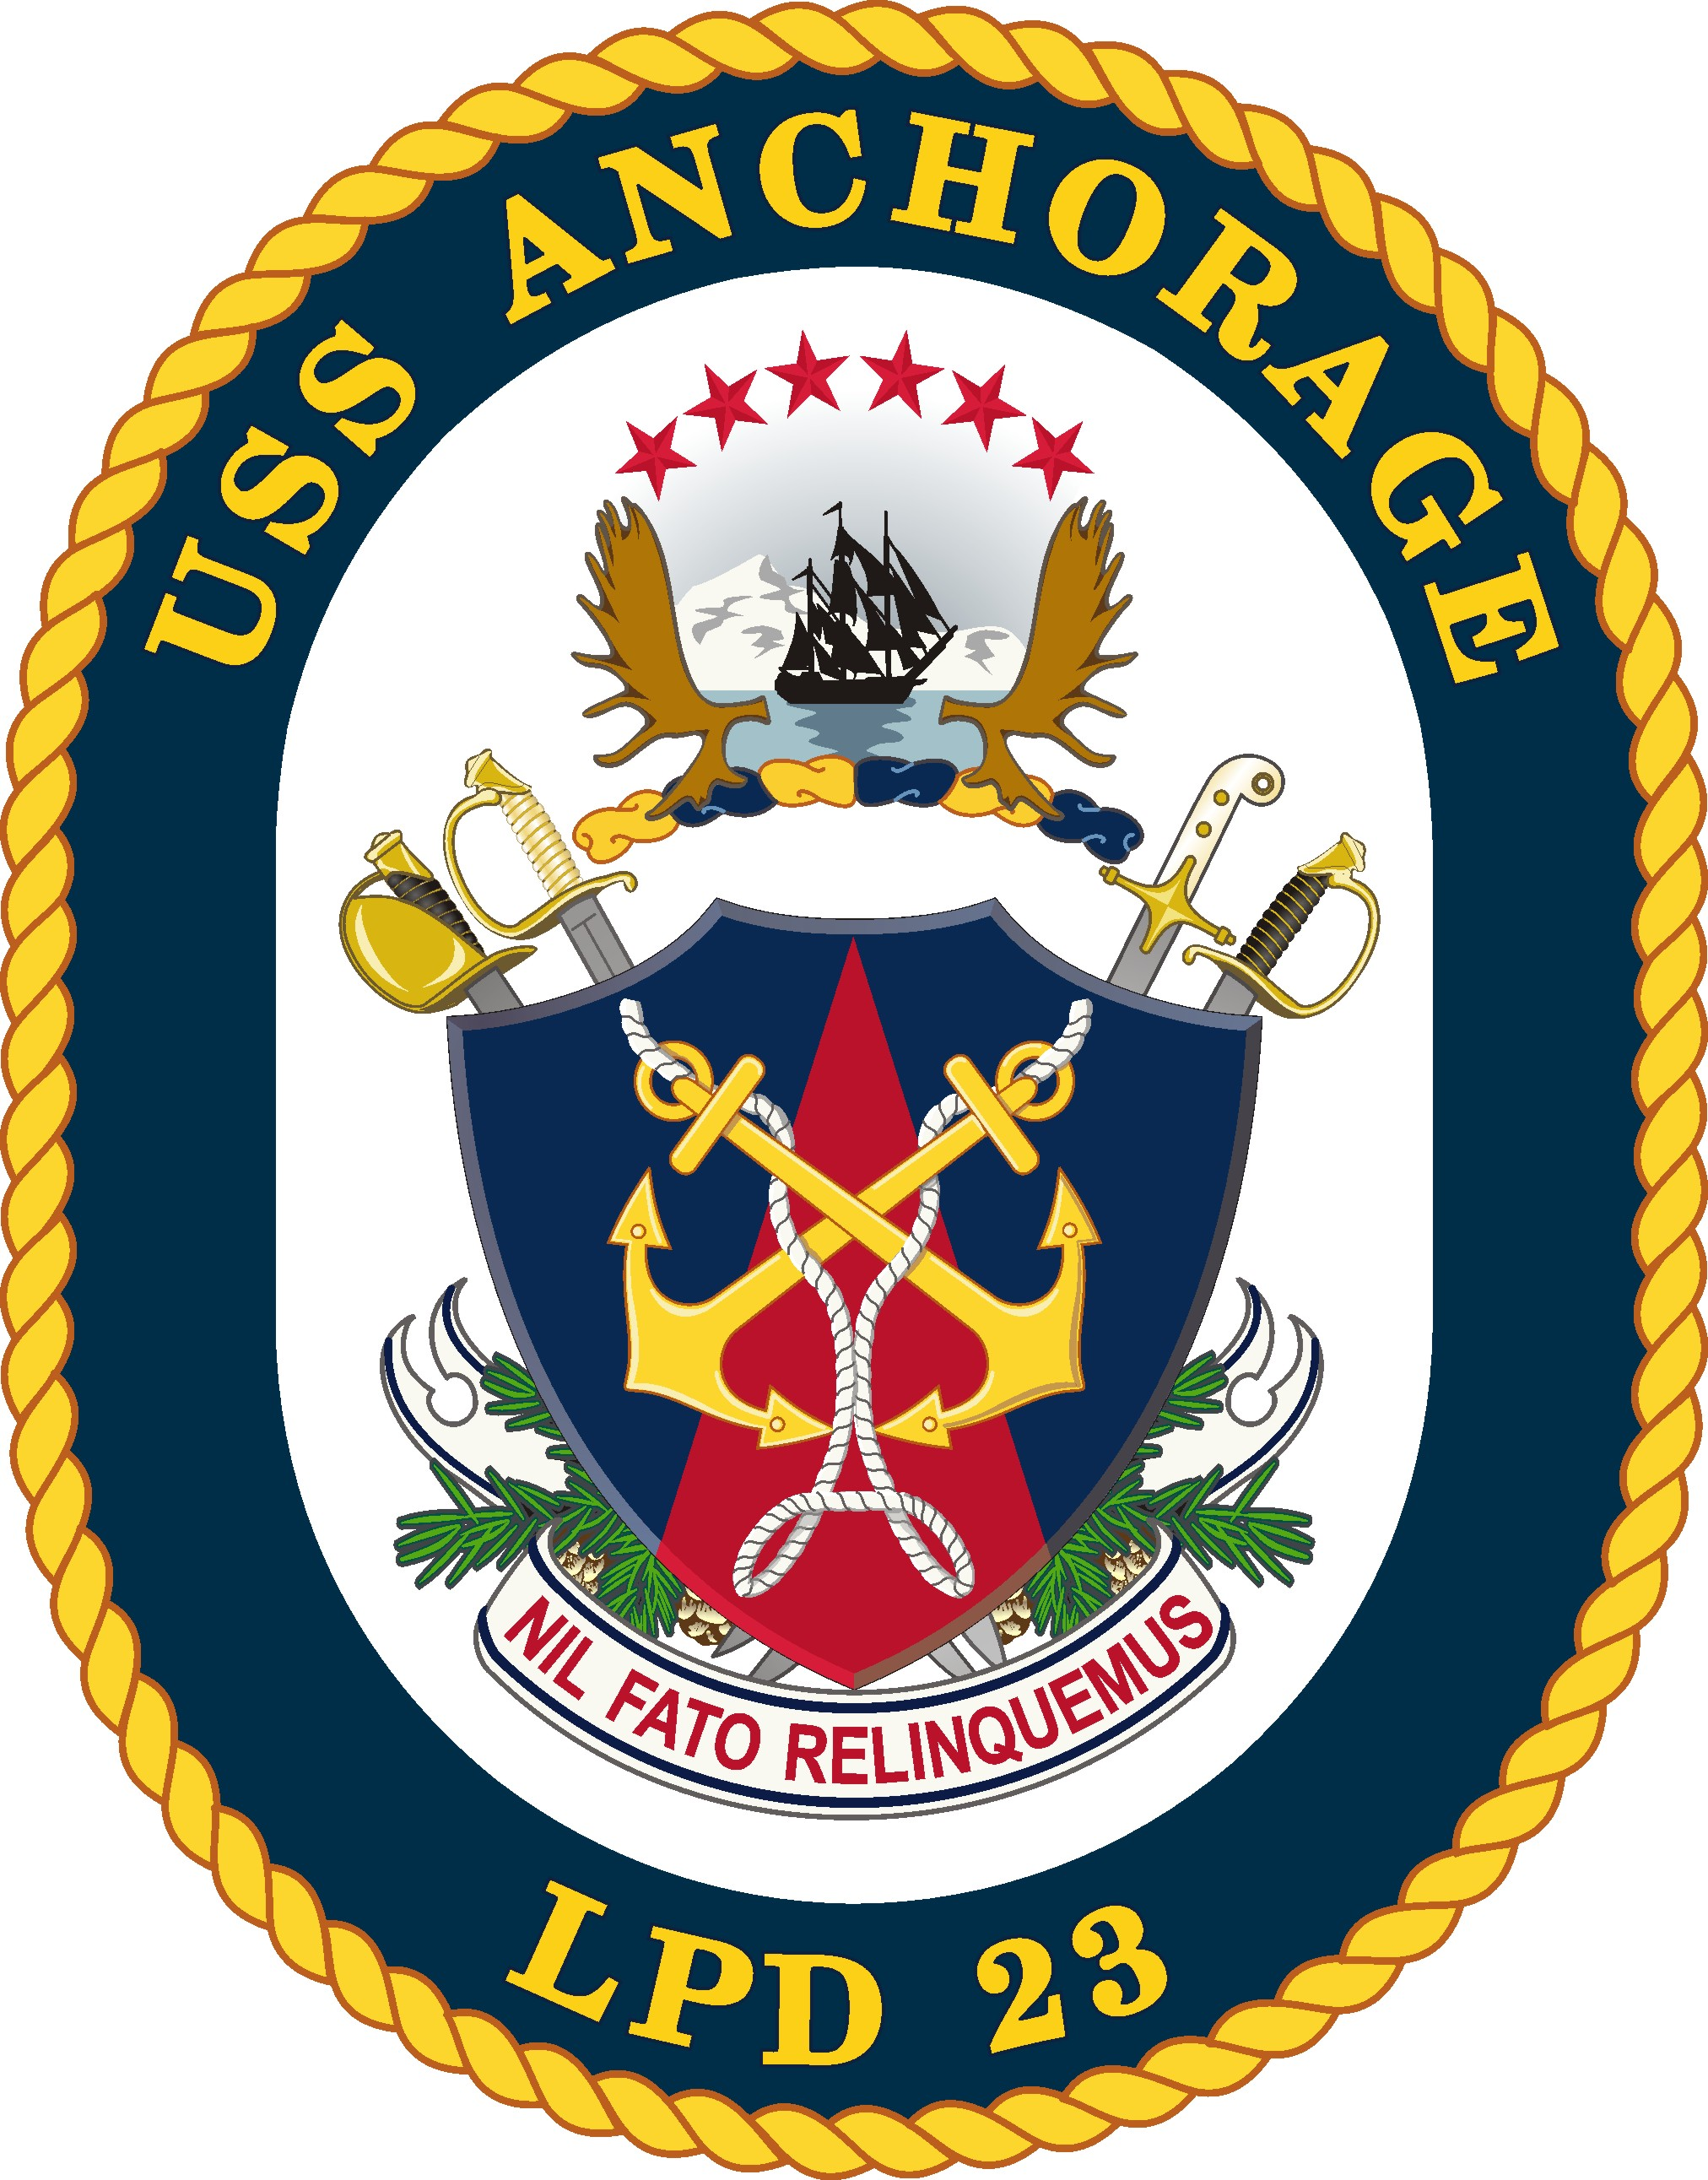 Abzeichen USS ANCHORAGE LPD-23Grafik: U.S. Navy